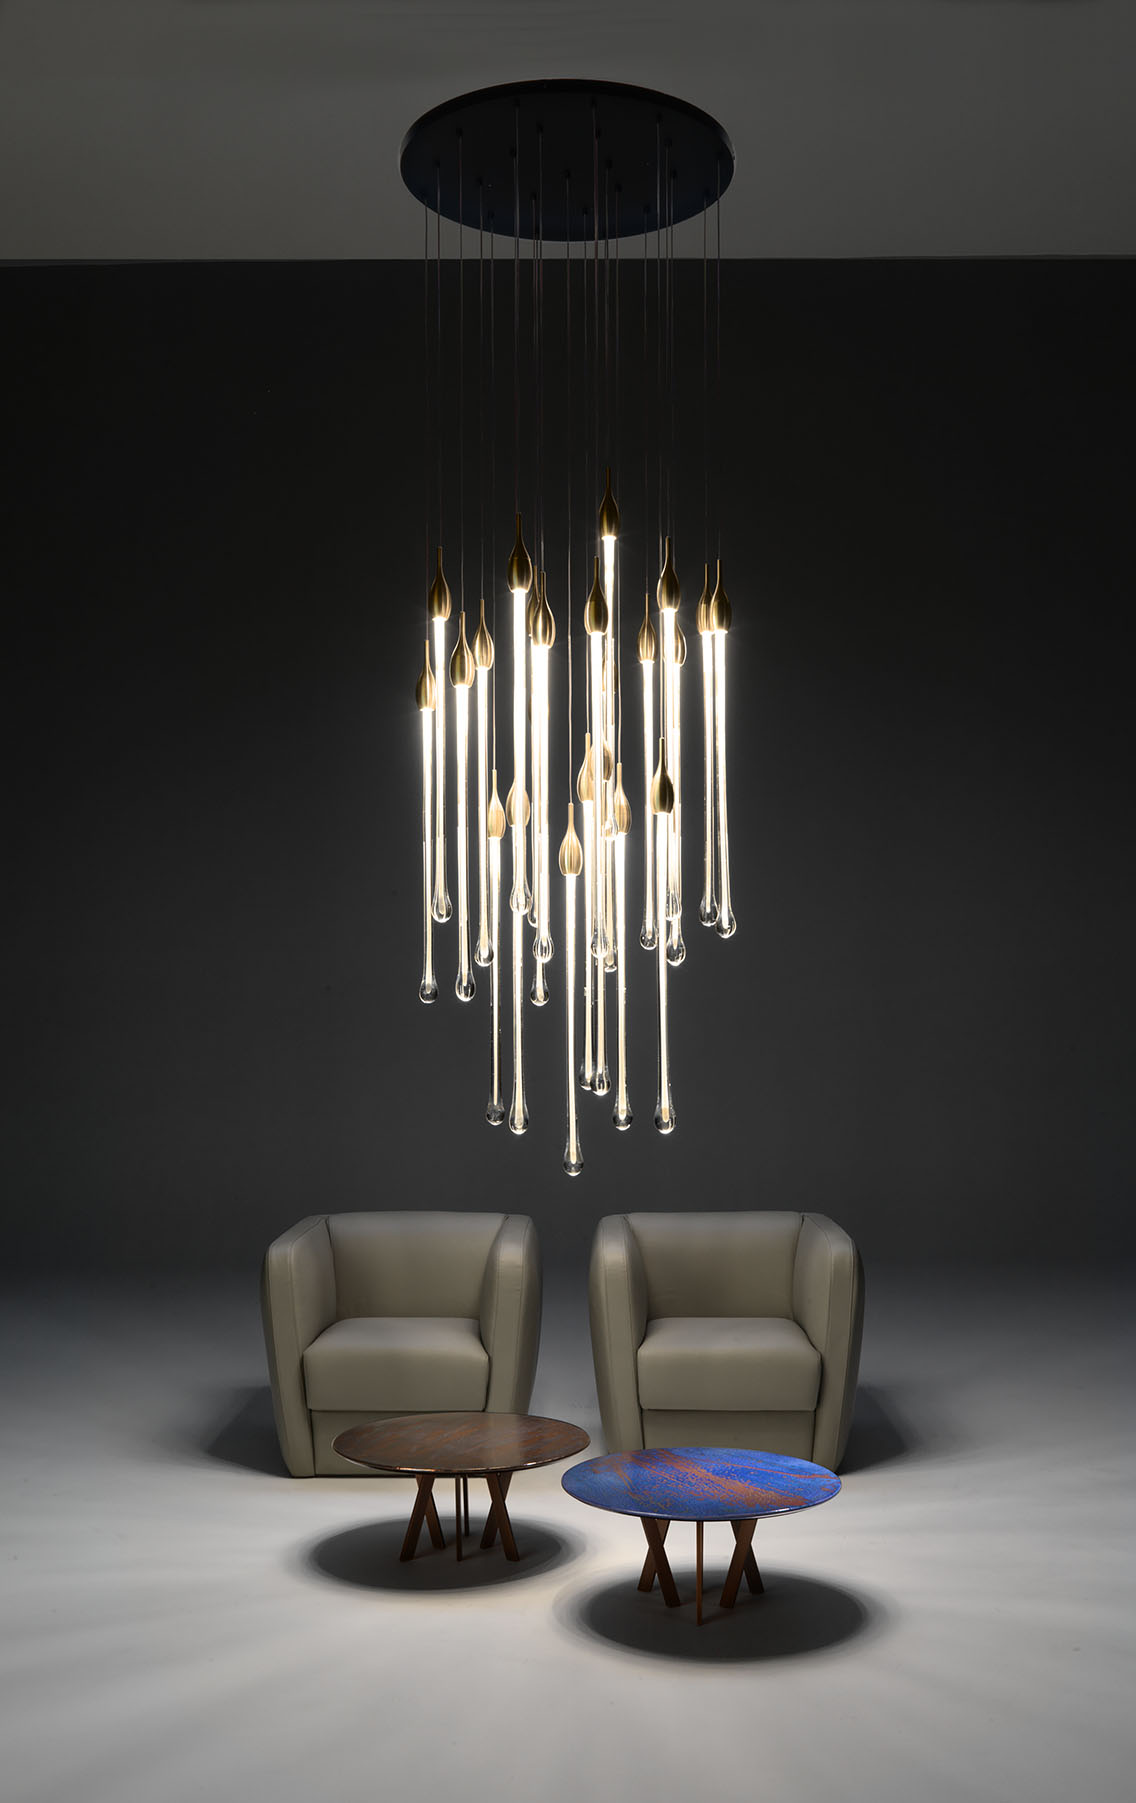 Muranese long glass tube ceiling light by Paolo Castelli